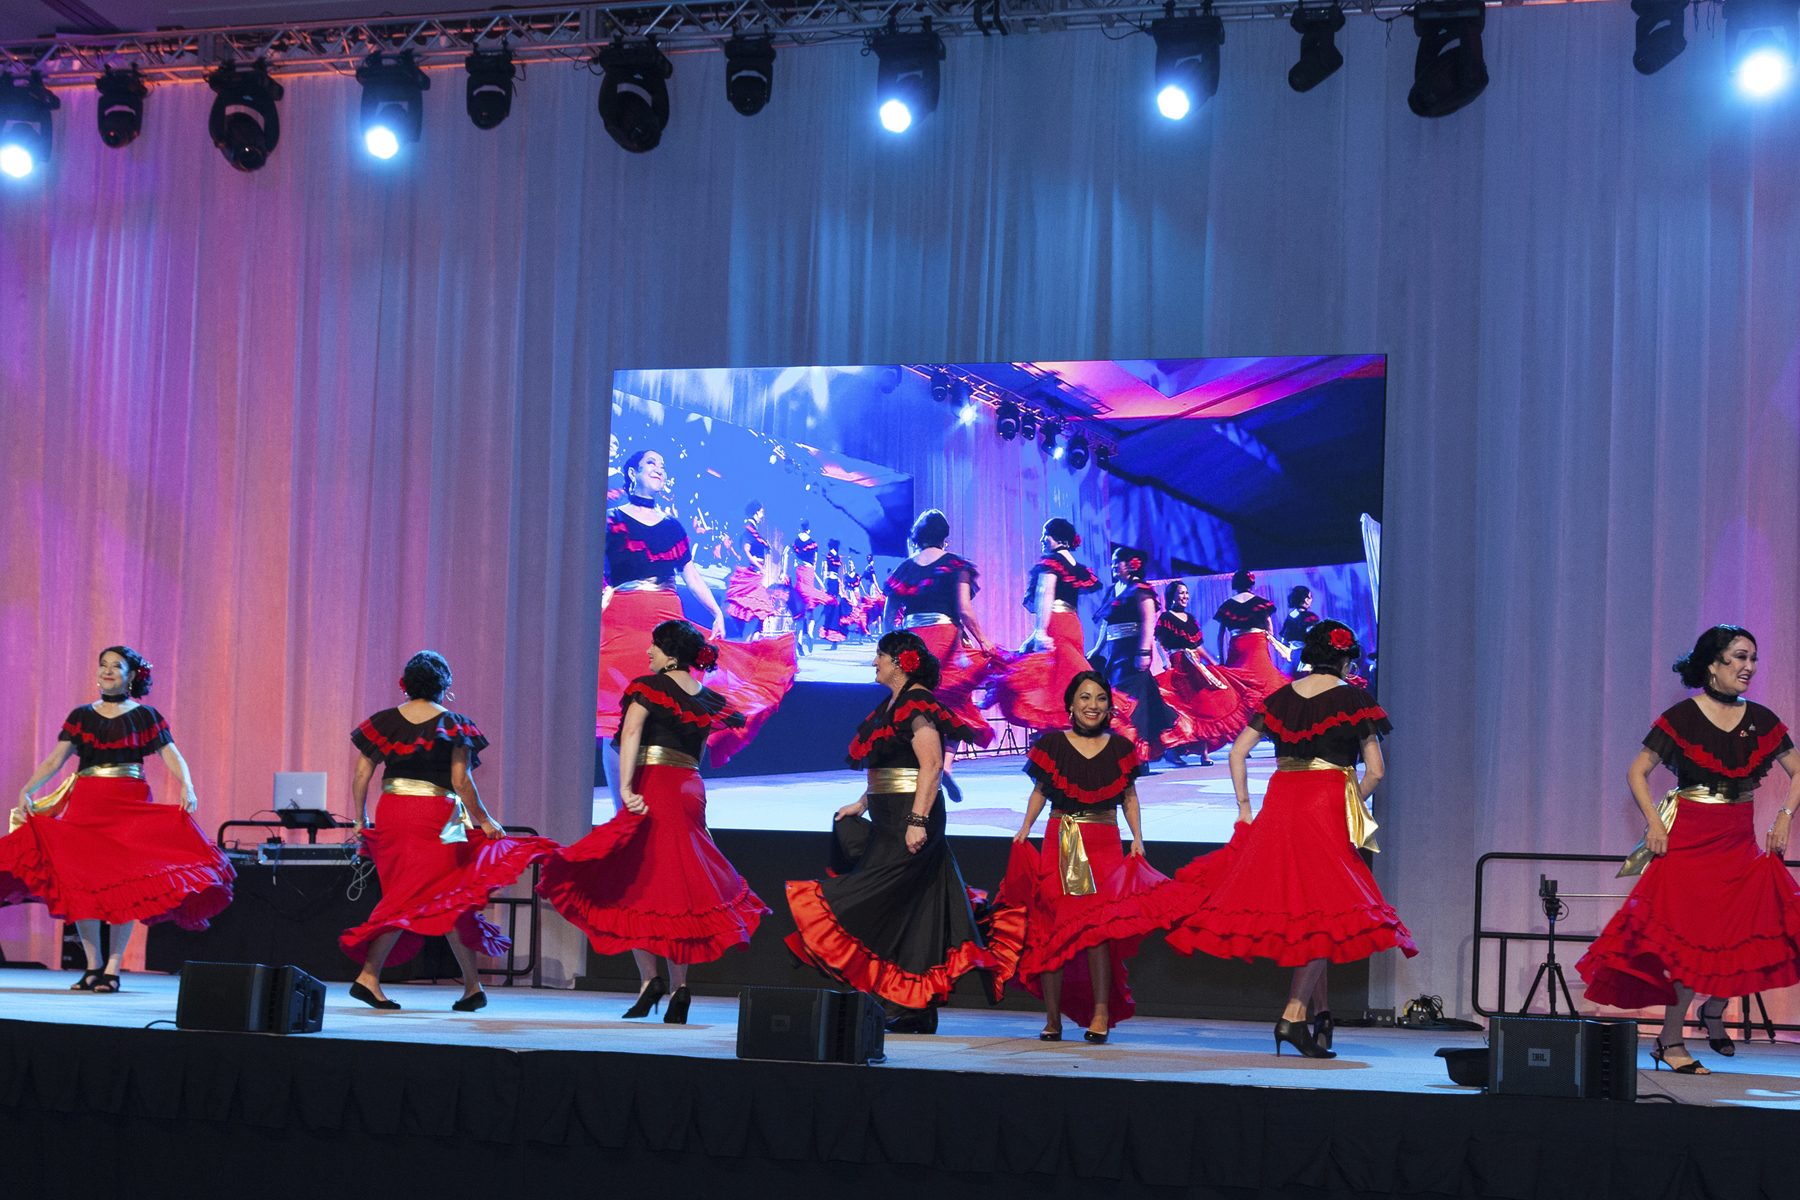 2016 AN EVENING AROUND THE WORLD: The CFS Flamenco Ladies take the stage!